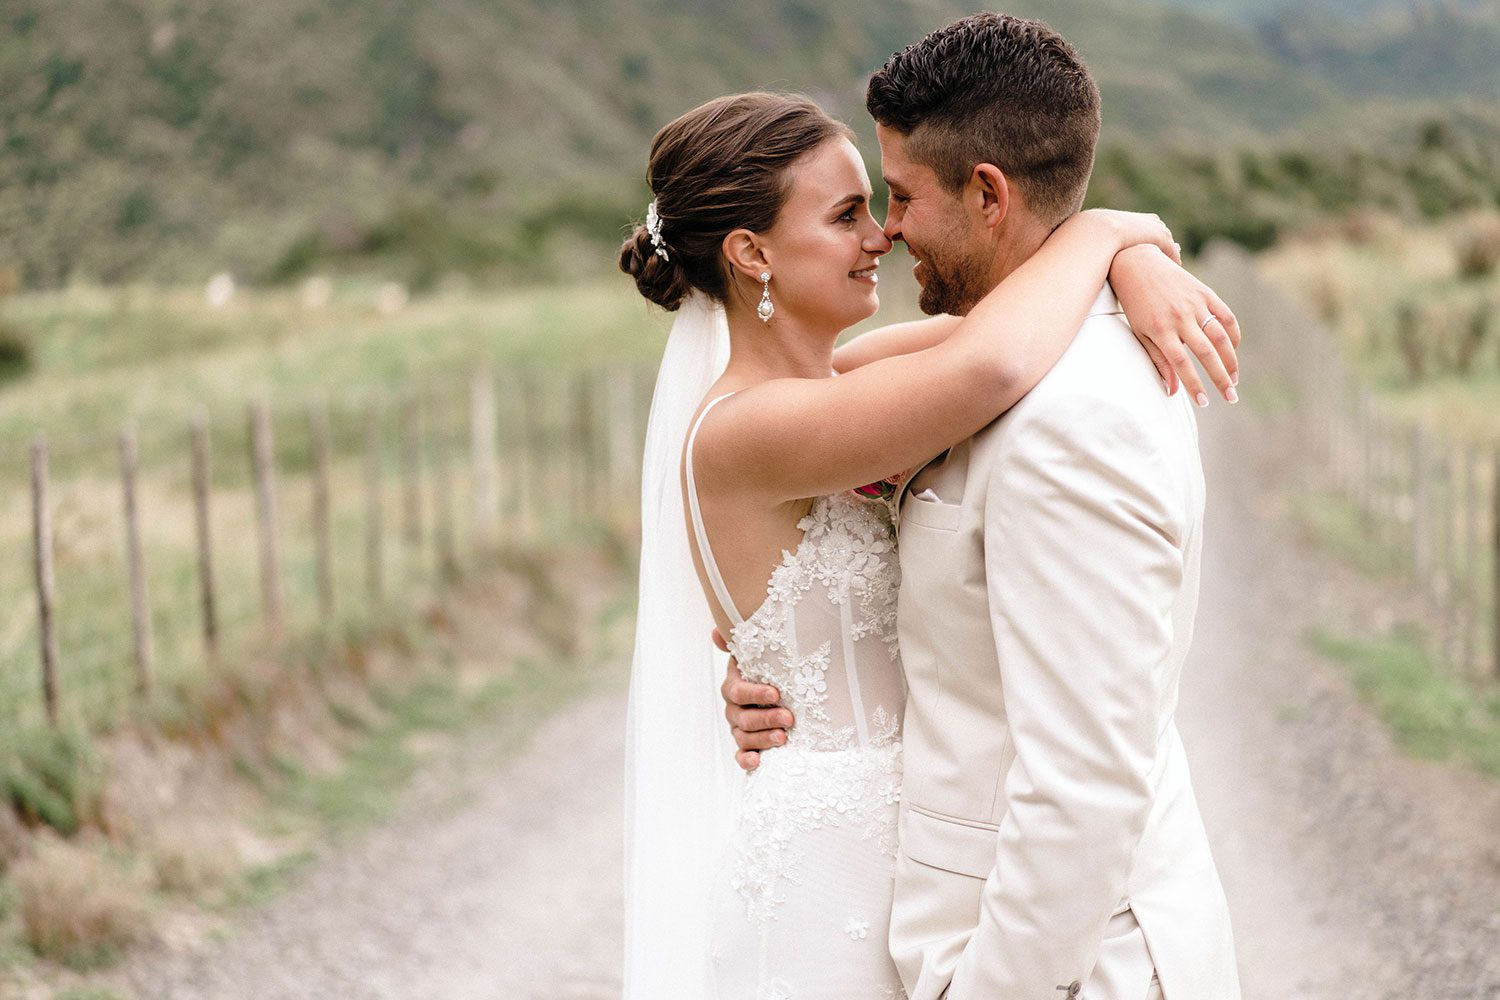 Bride wears bespoke E'More lace gown with boned bodice with hand beaded flower applique and full lace train by Auckland wedding dress maker Vinka designs - embrace with groom close up